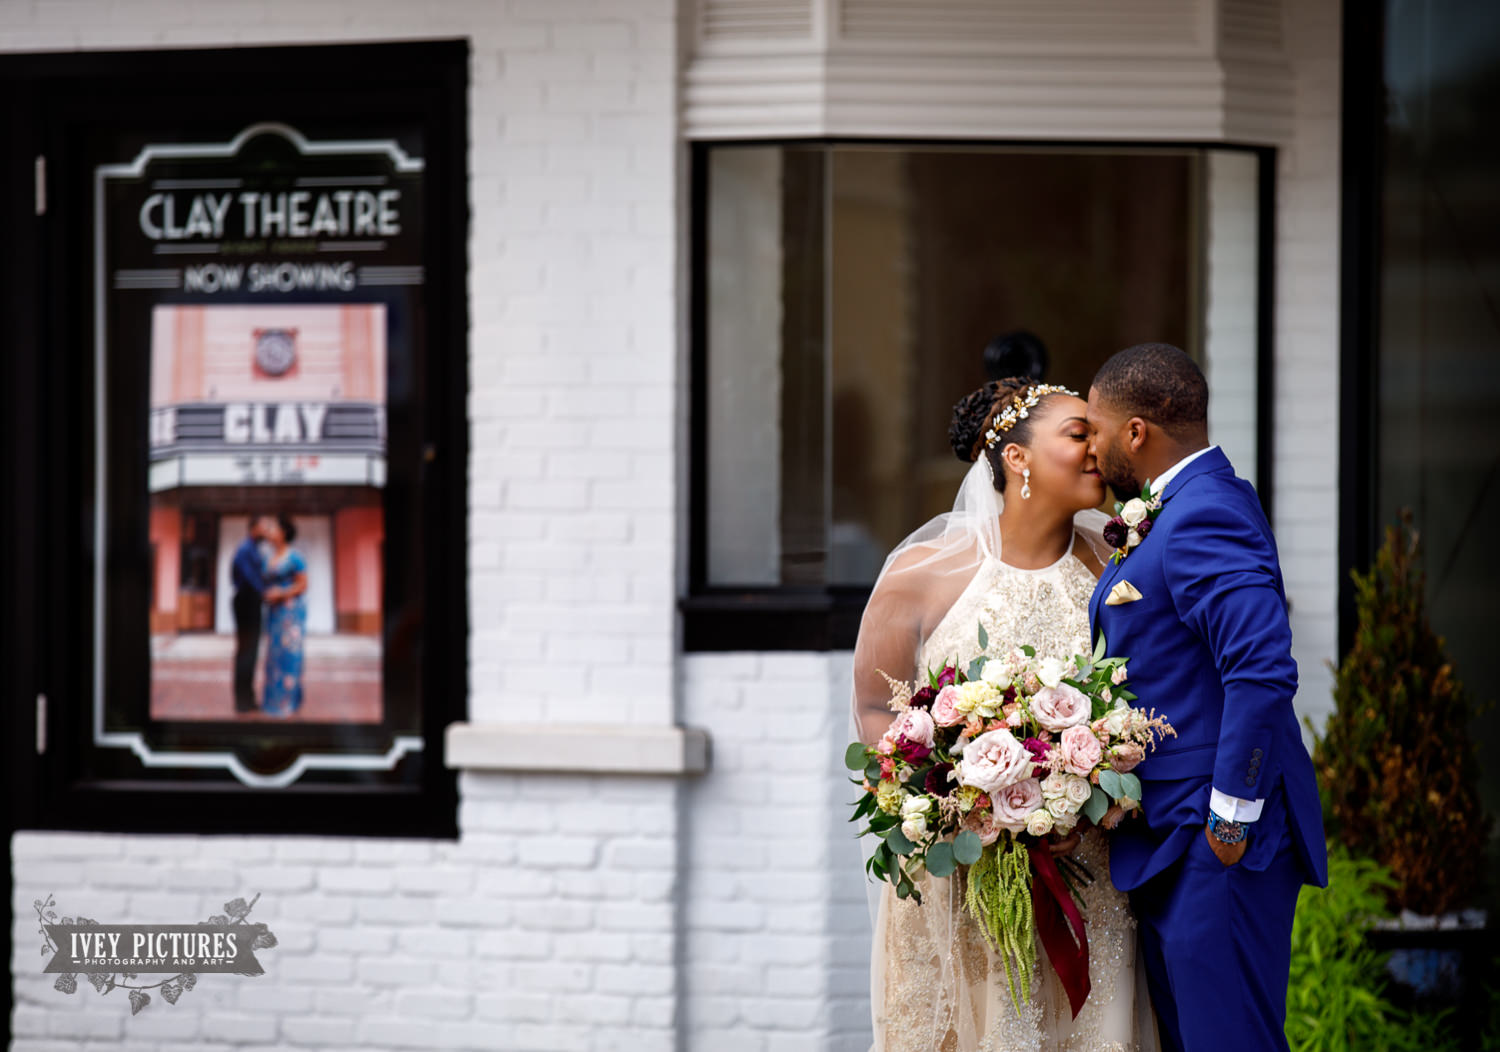 best clay theatre wedding photos